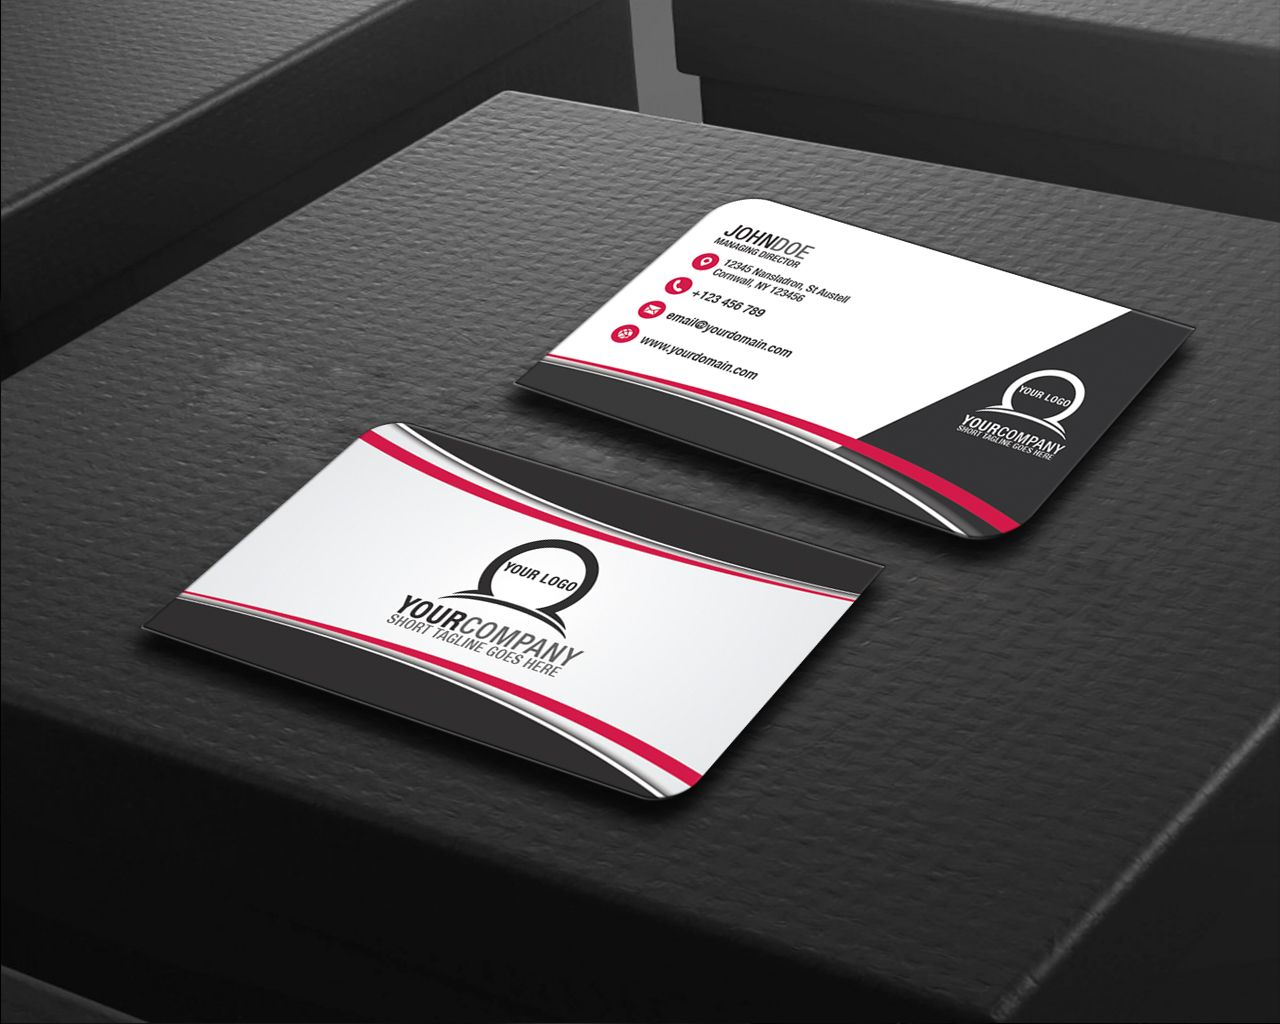 Simple professional business card design style 2 business card simple professional business card design style 2 screenshot 1 colourmoves Image collections